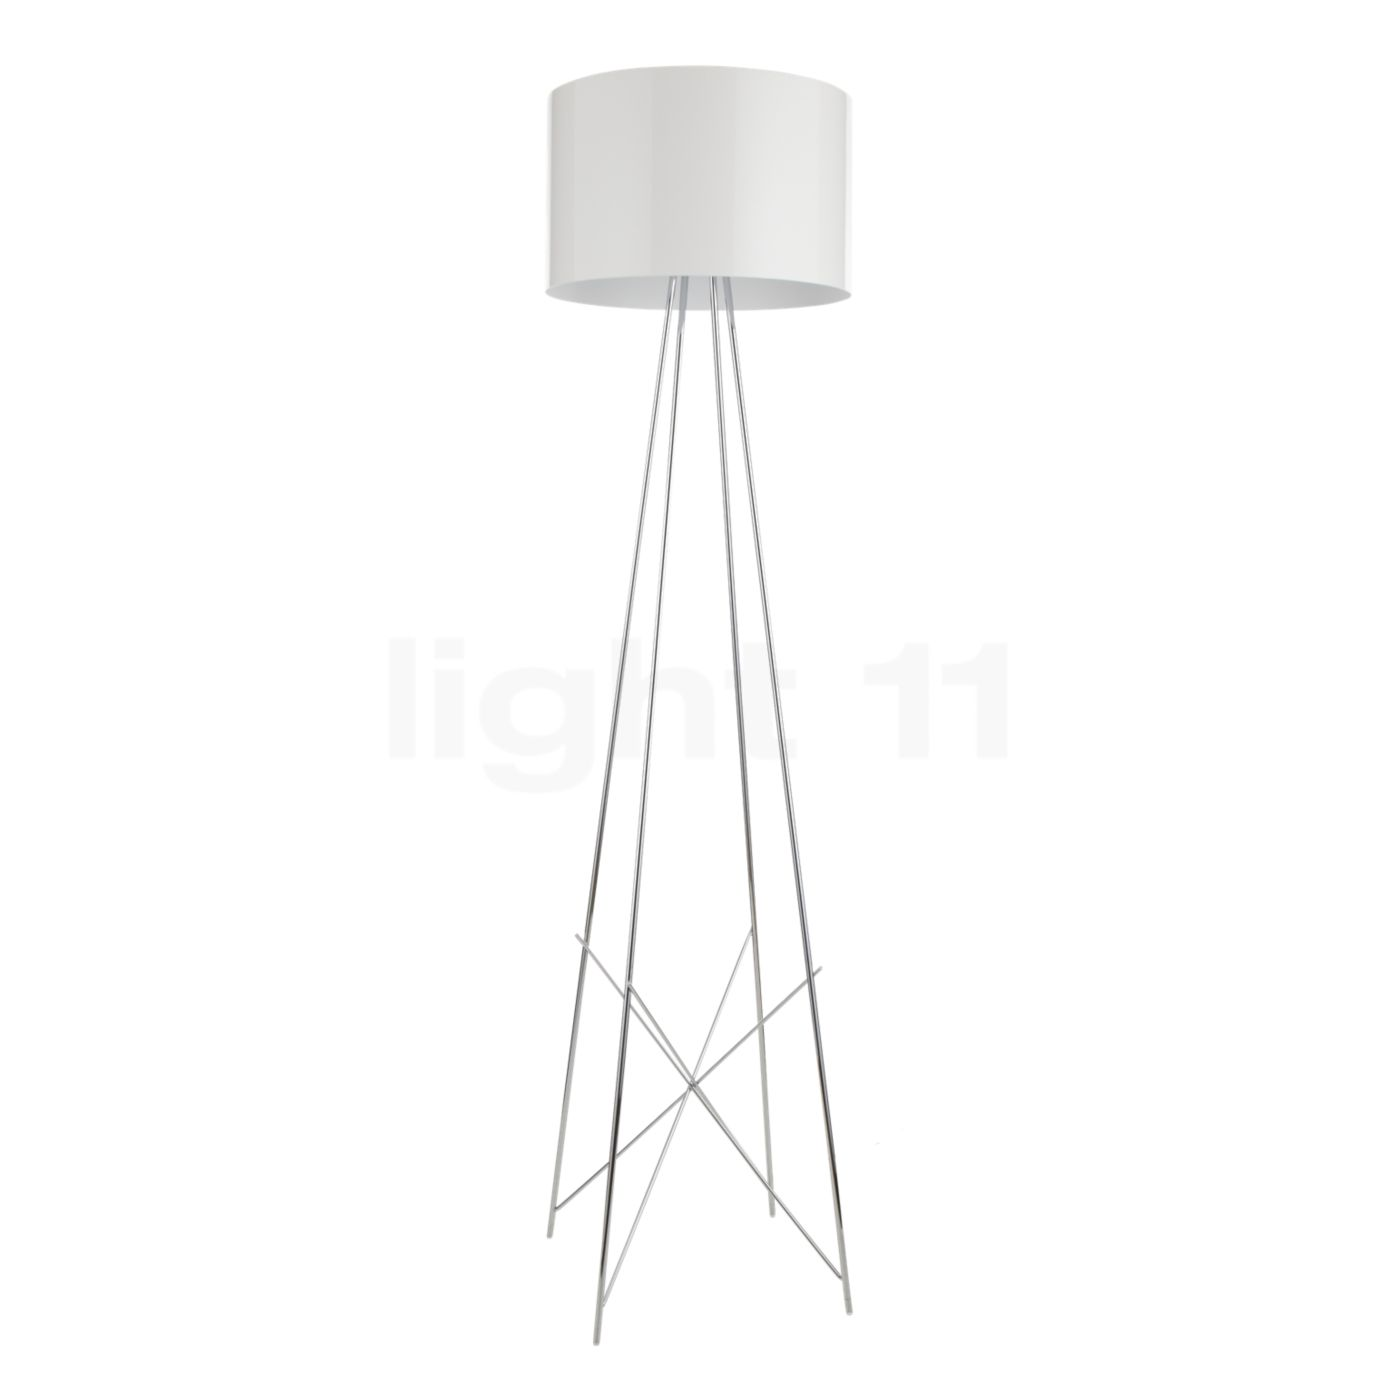 Flos ray f2 floor lamps buy at light11 aloadofball Images